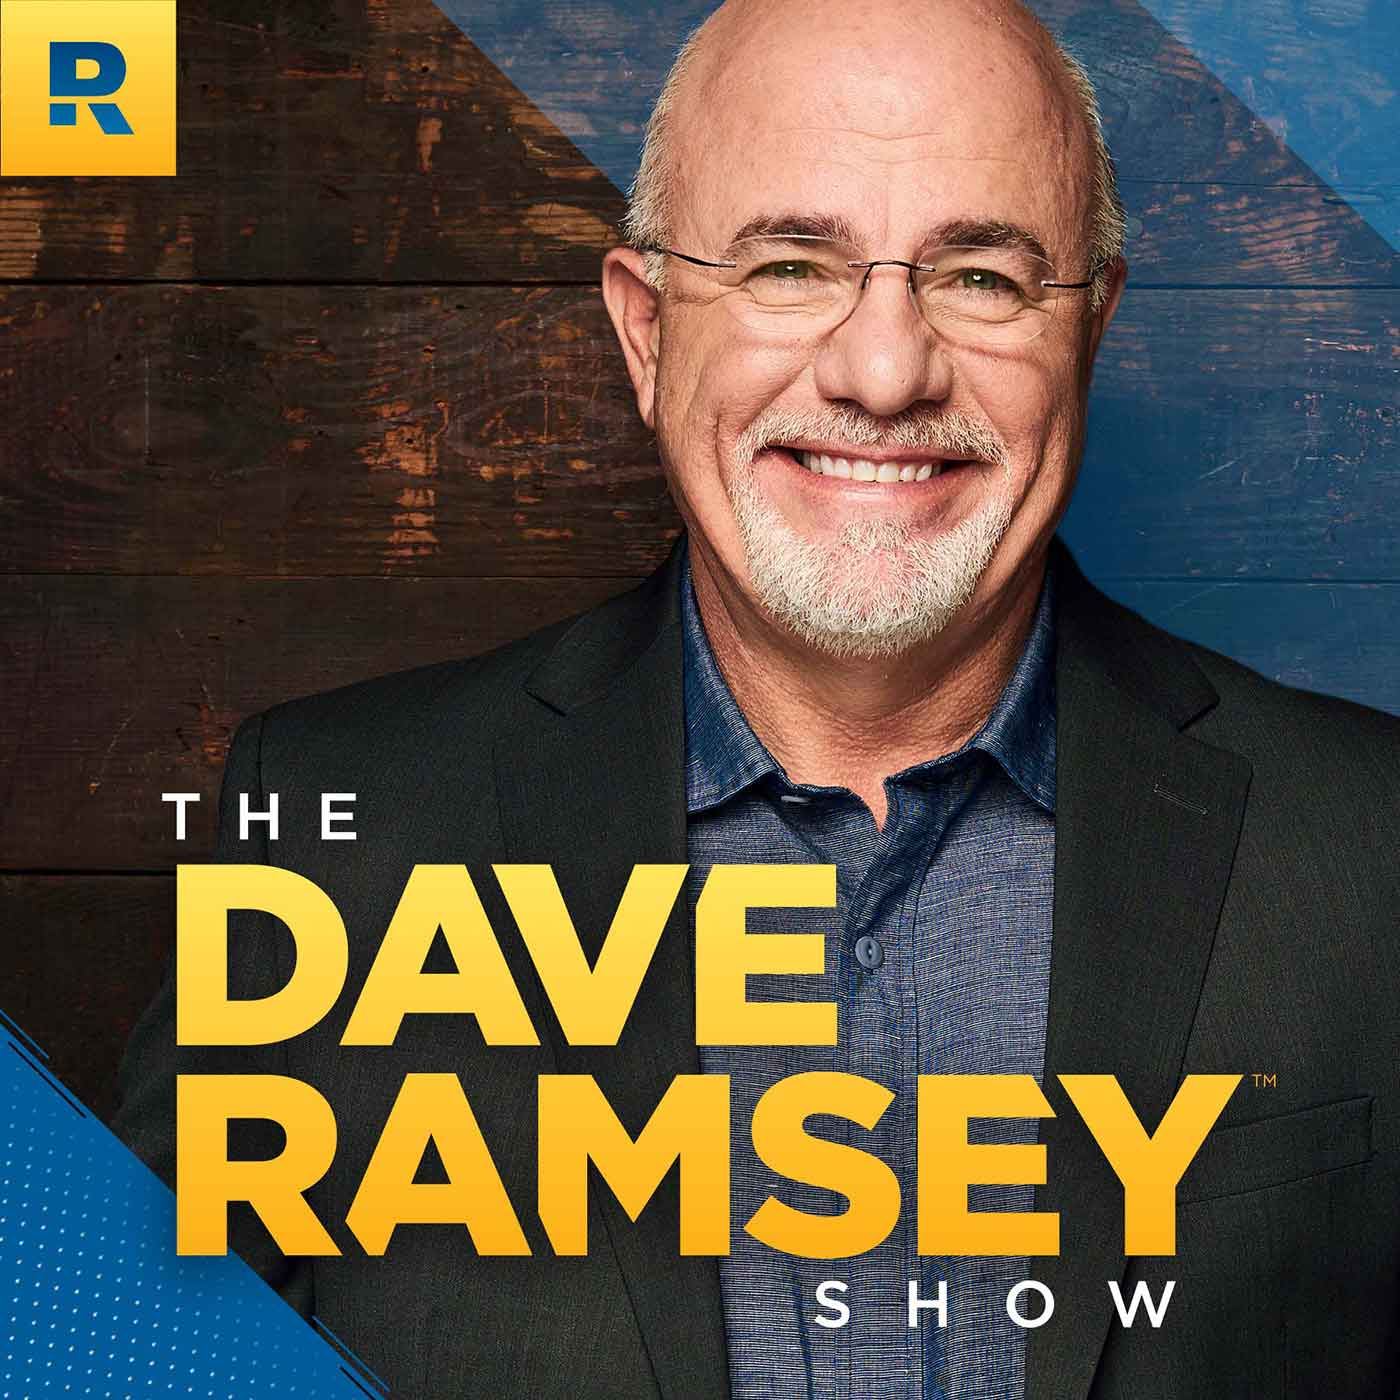 The Dave Ramsey Show show art